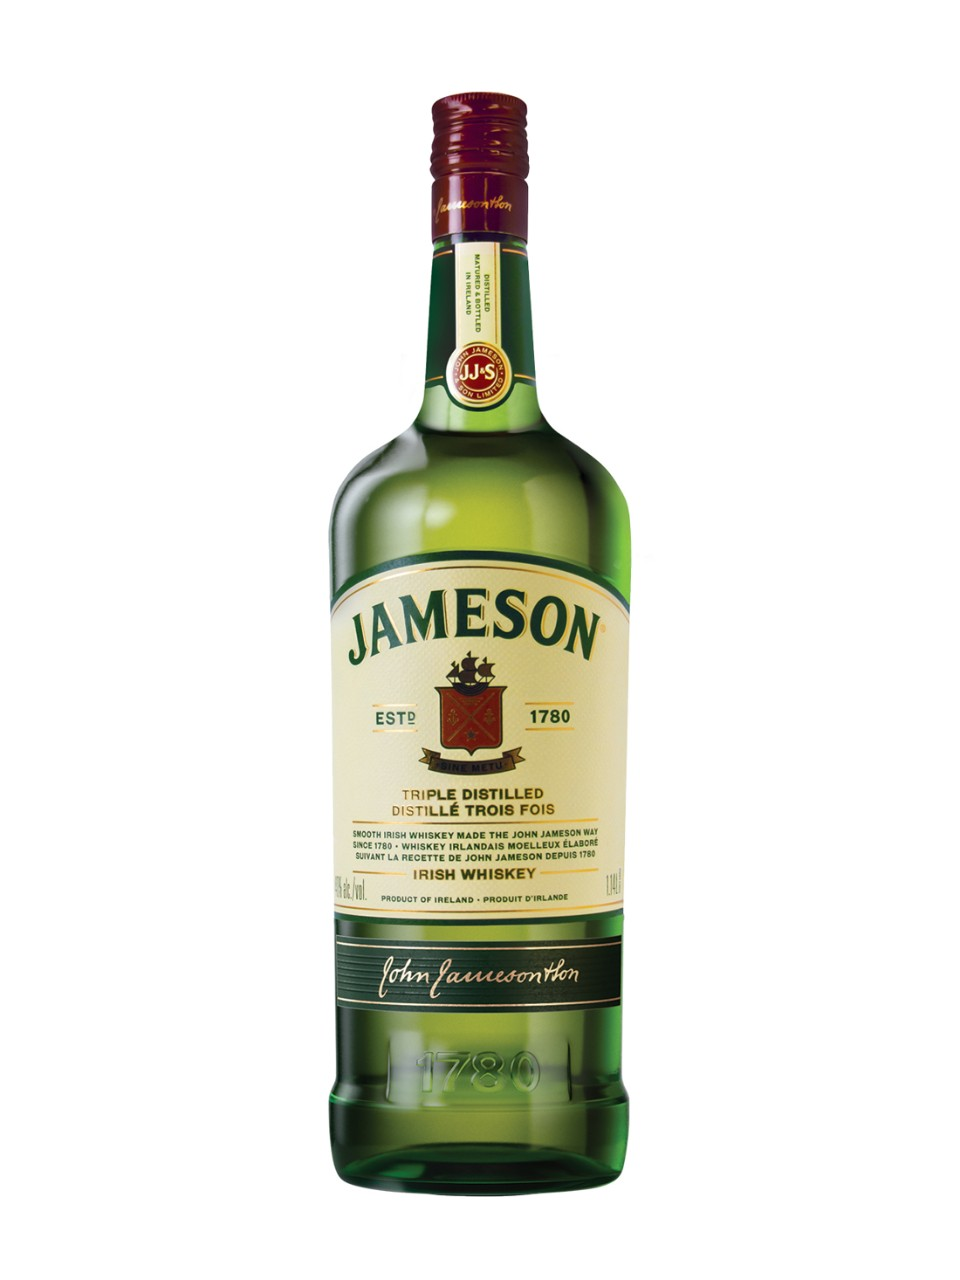 Image courtesy of LCBO comJameson Irish Whiskey Bottle